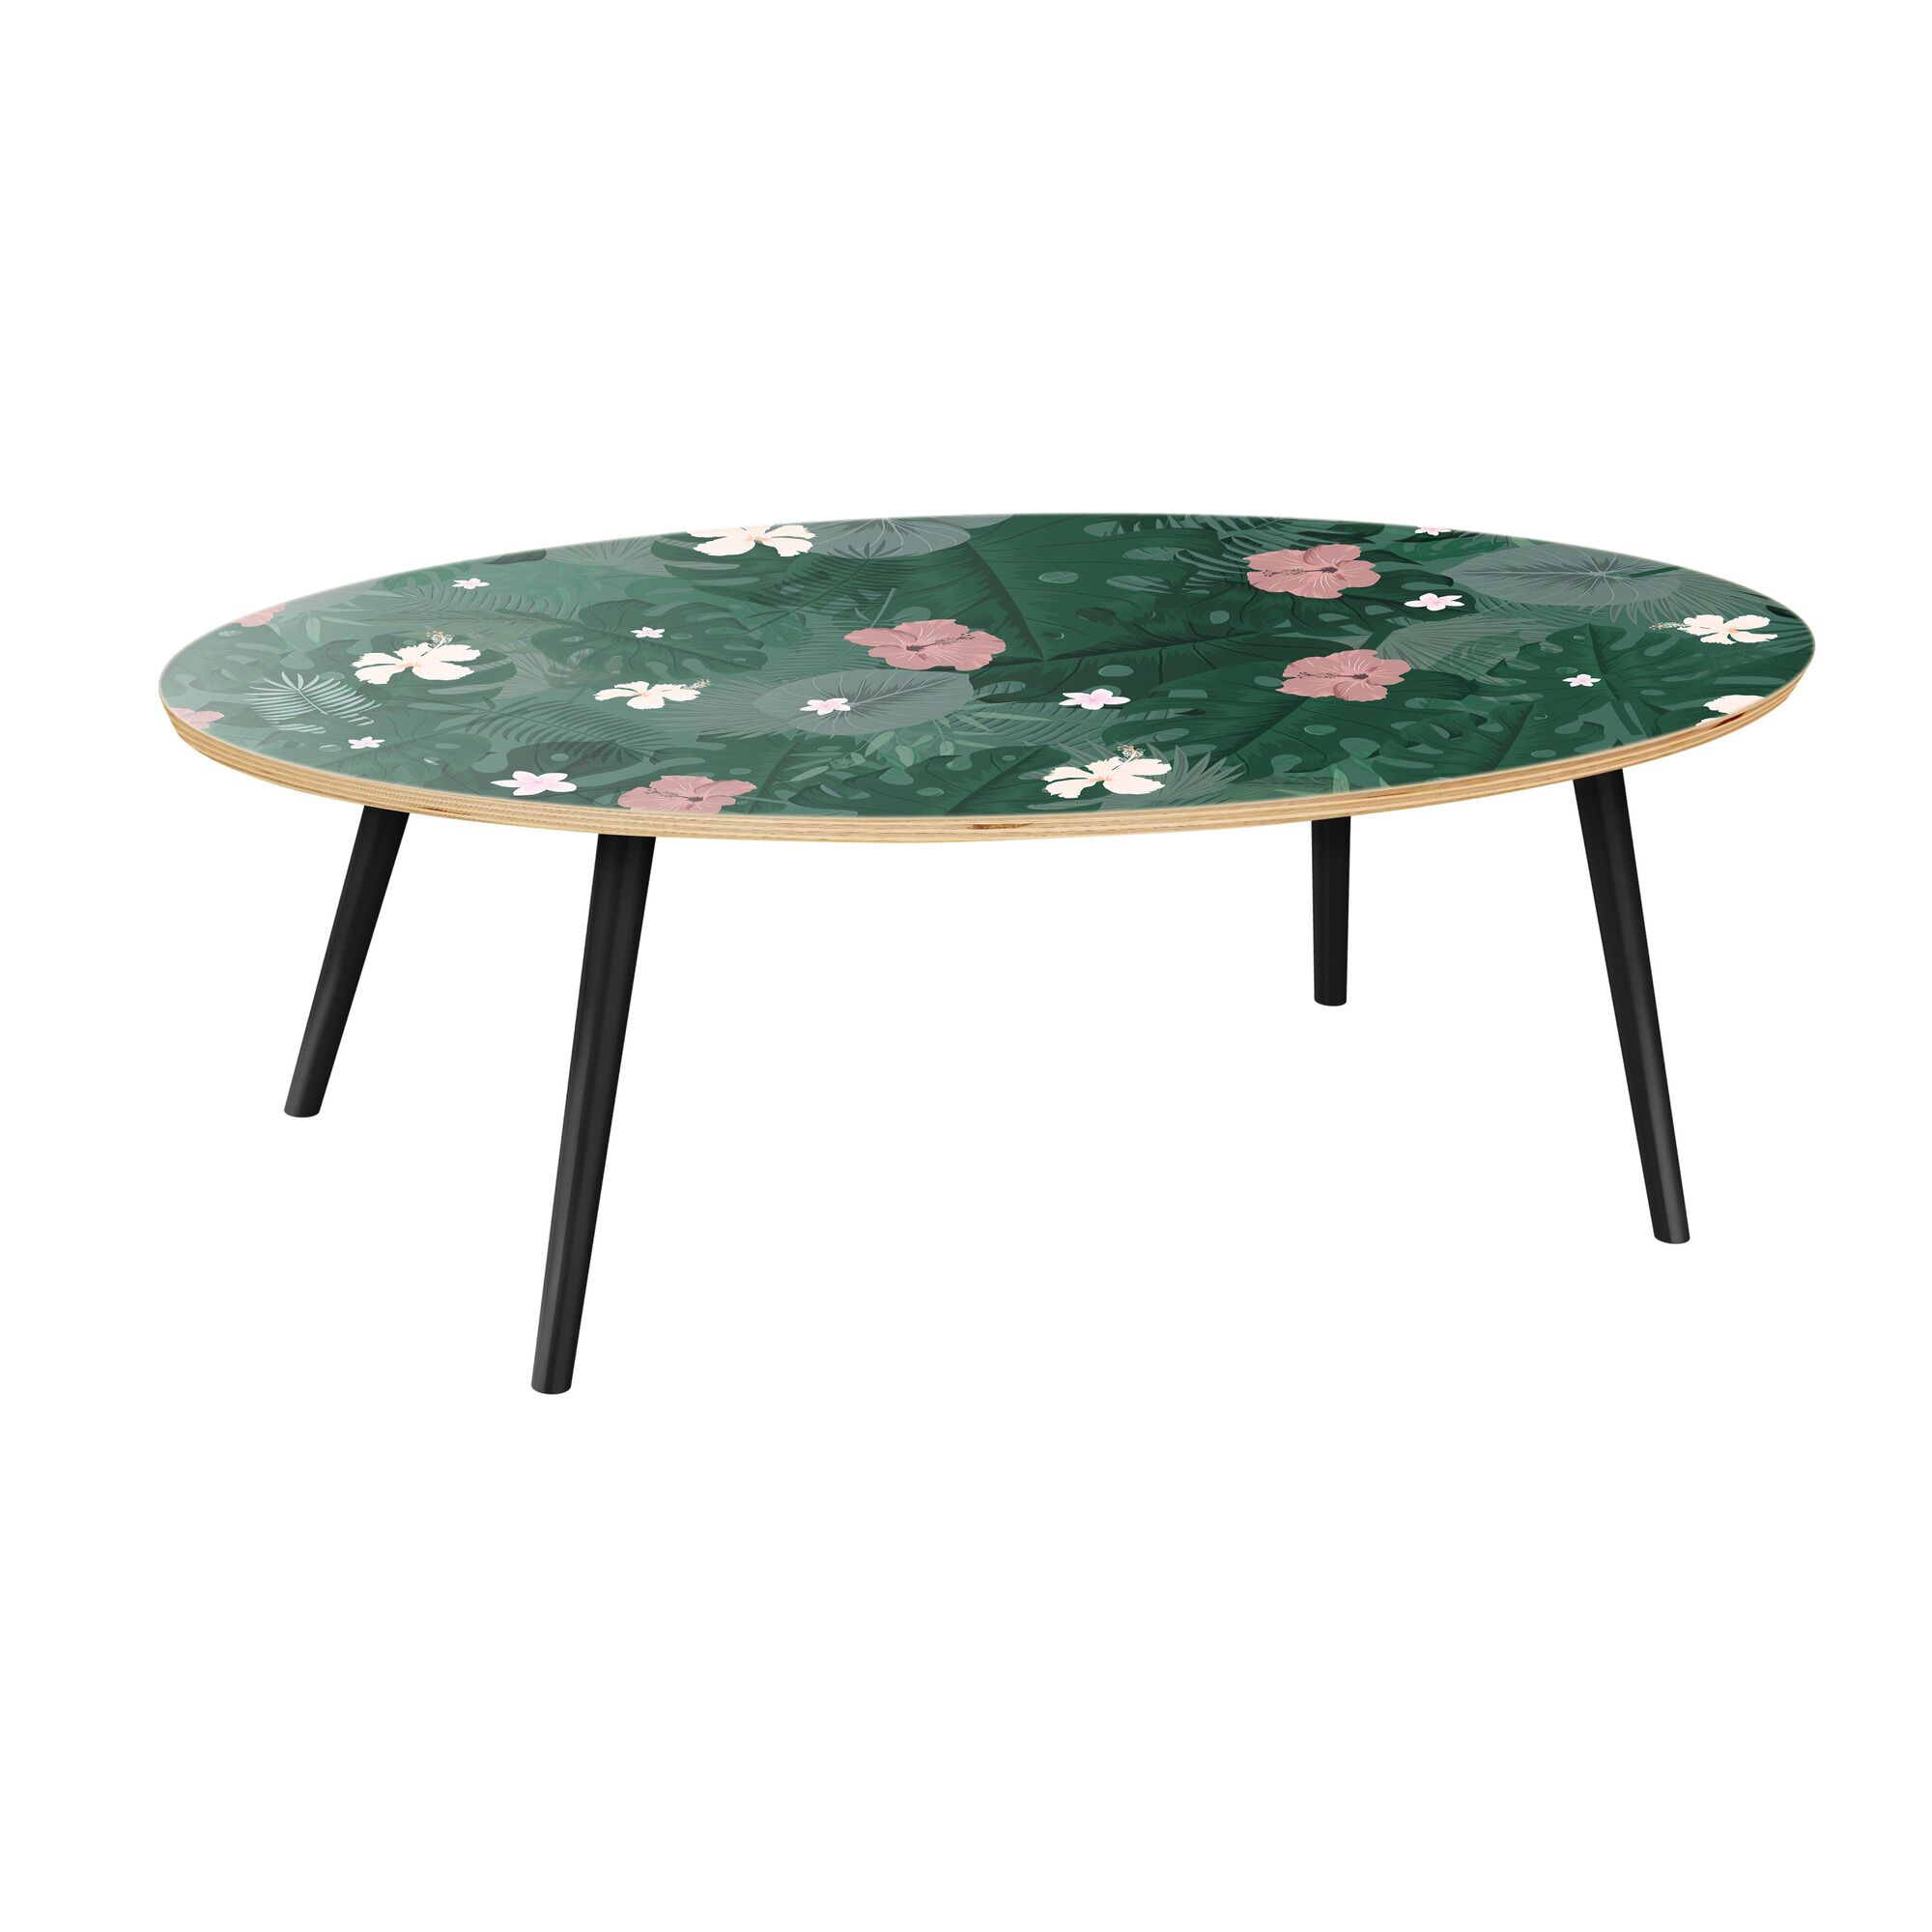 Scheidt Coffee Table Table Top Color: Natural, Table Base Color: Black